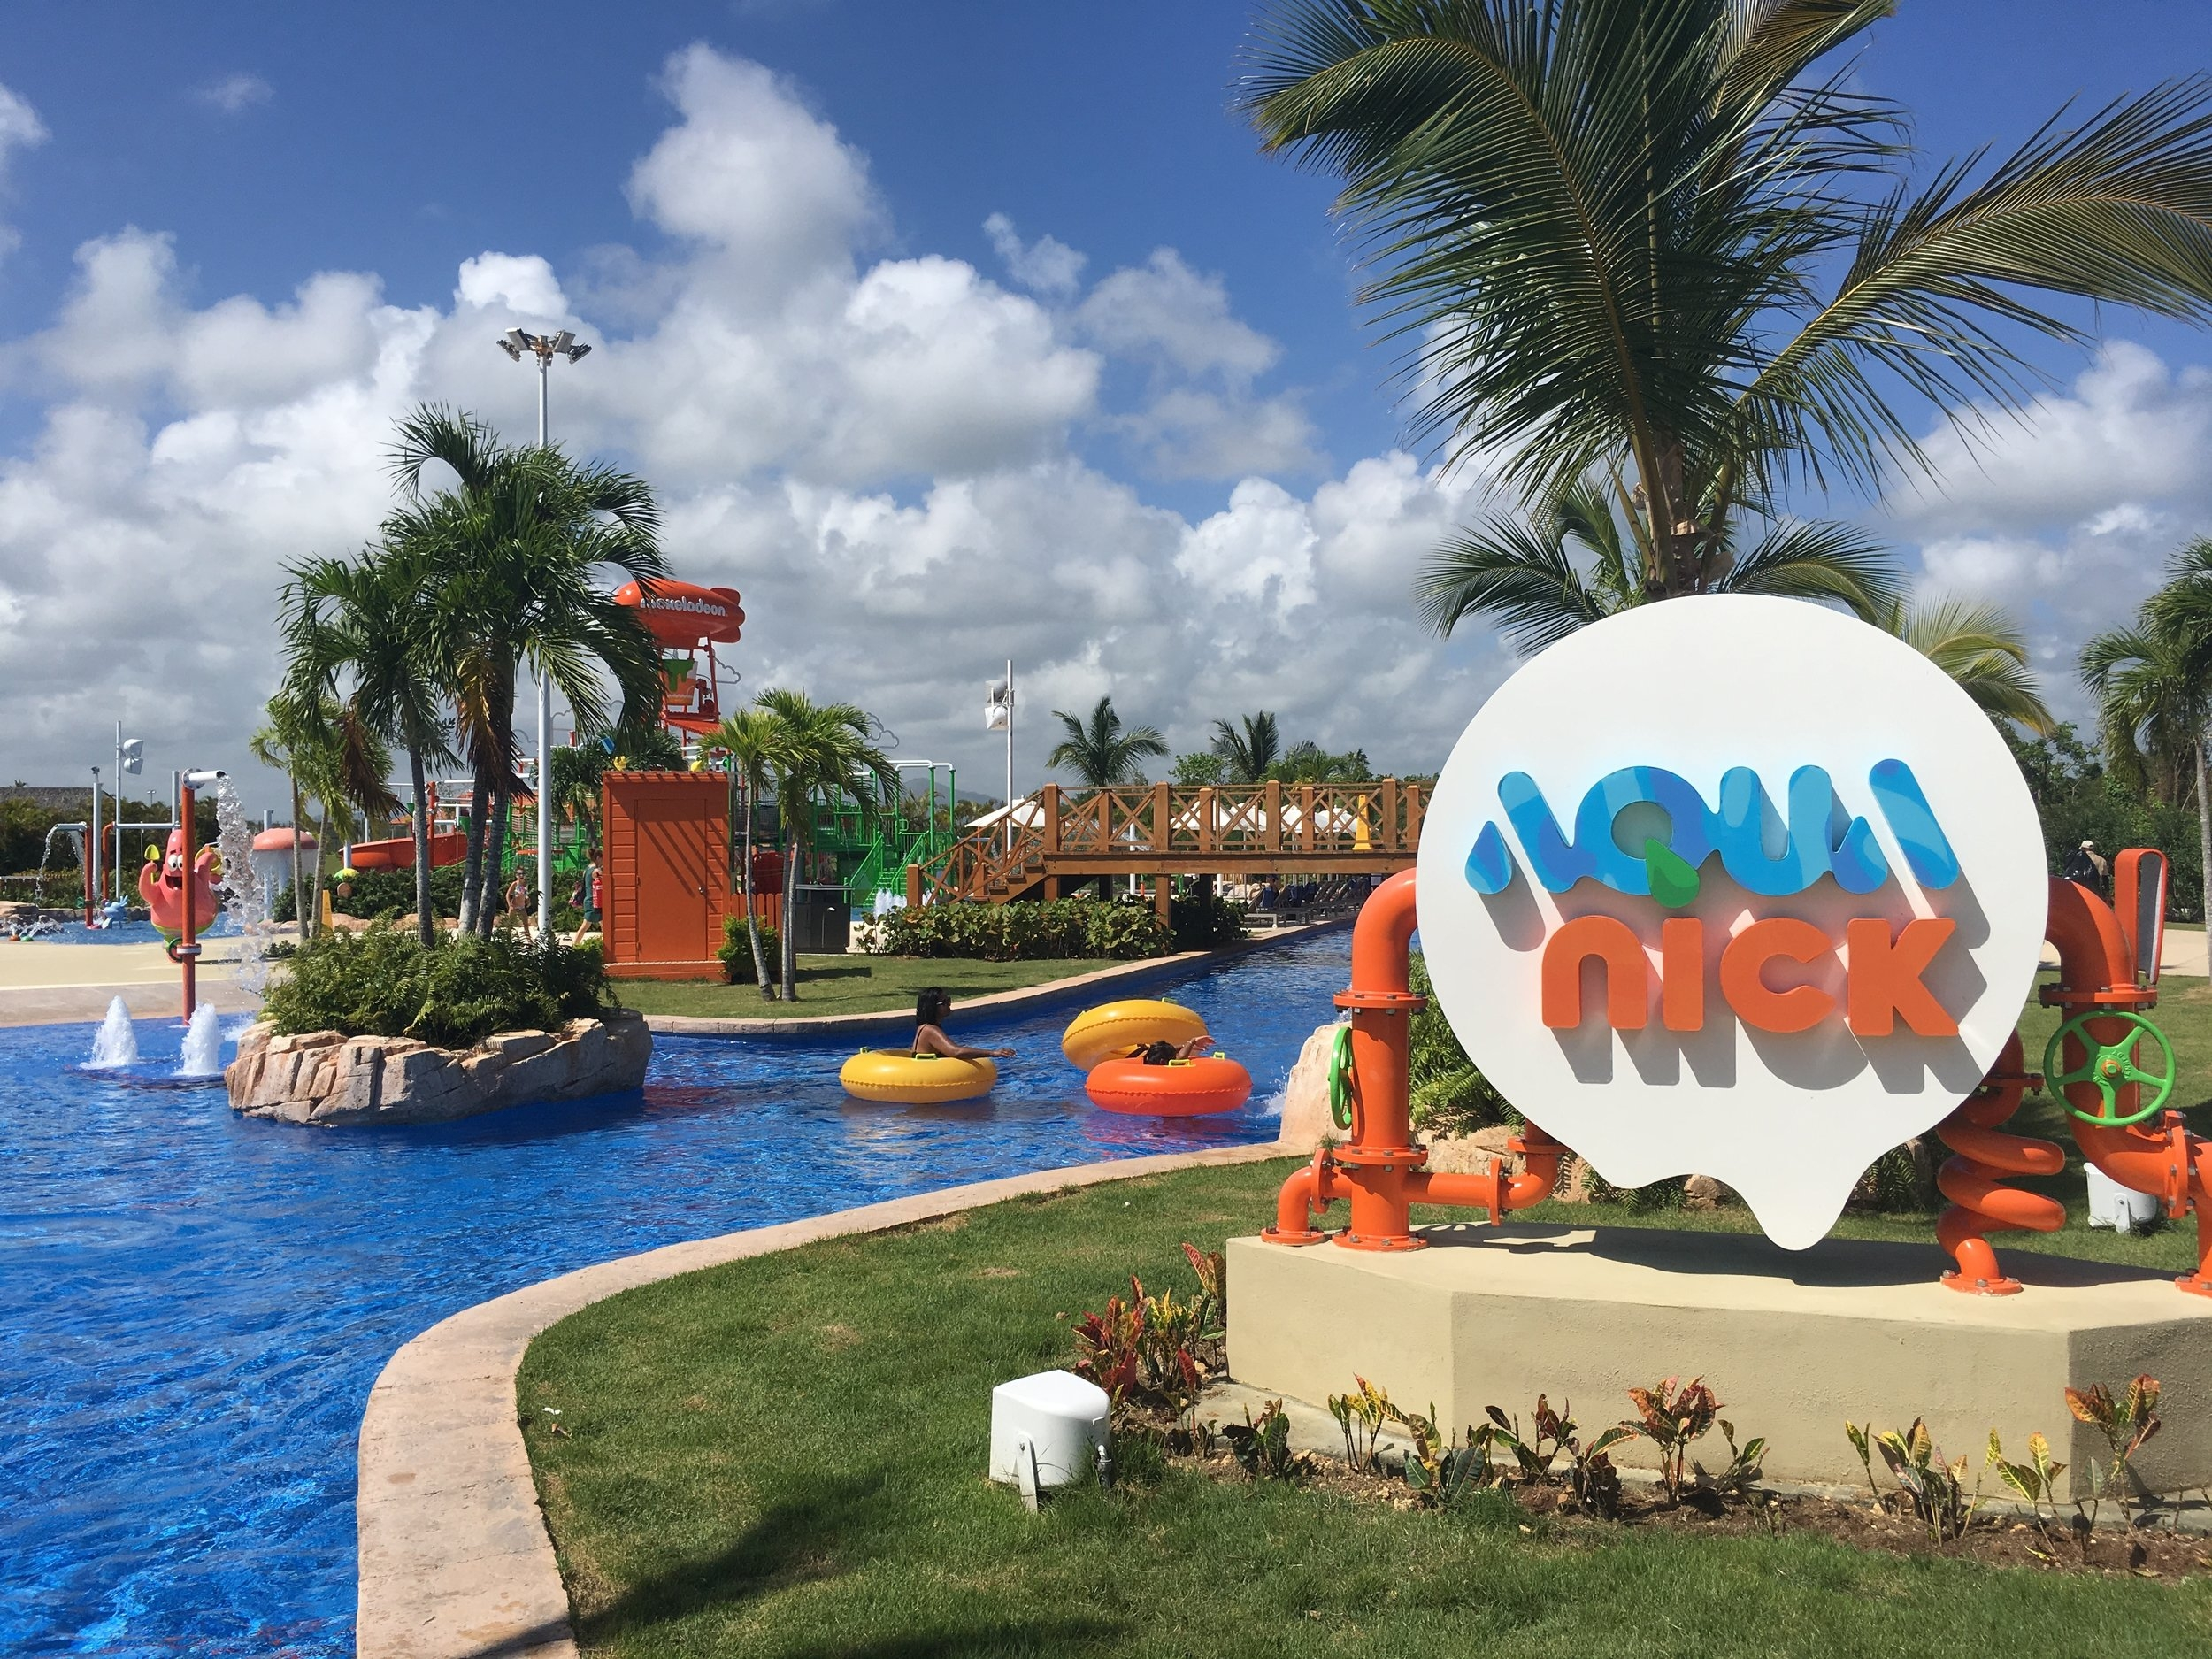 wanderlust-blog-nick-punta-cana-waterpark